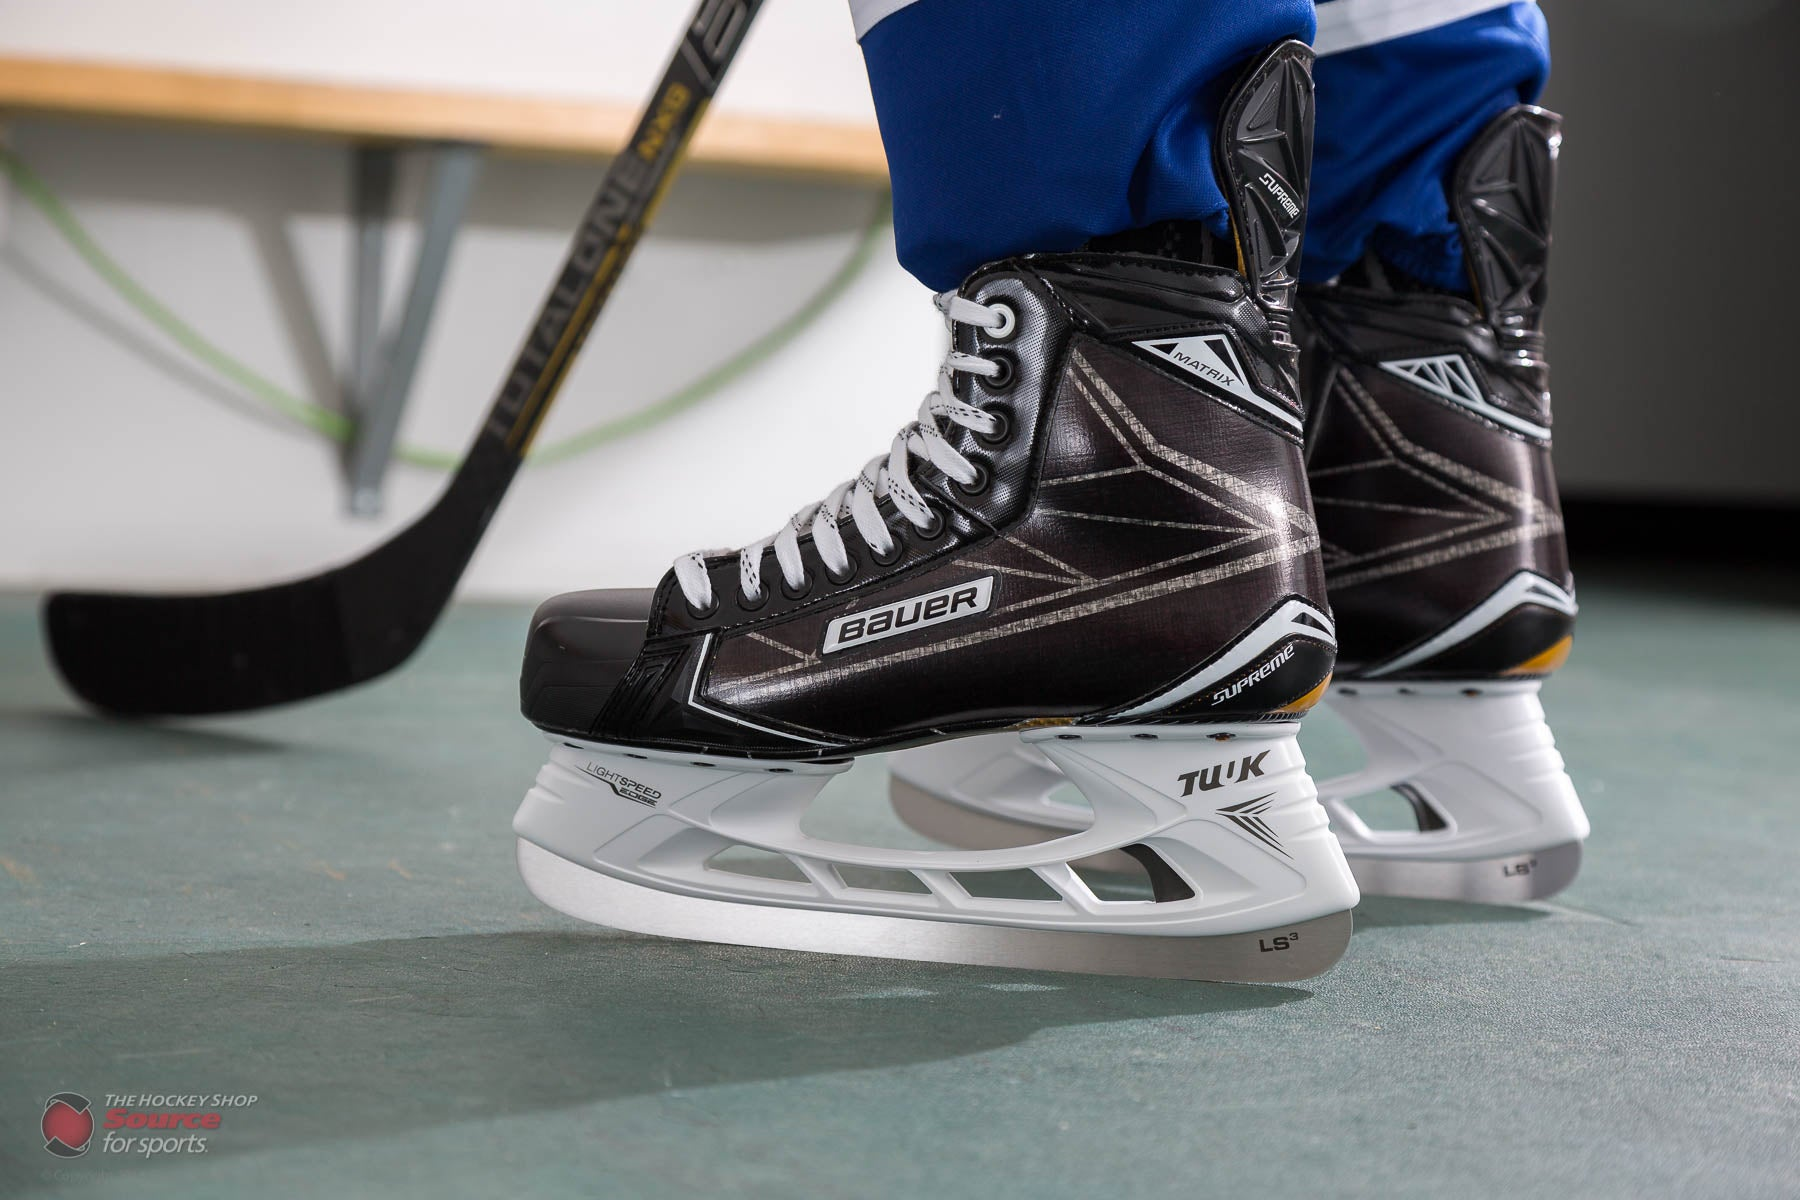 18020c89e3c Bauer Supreme Matrix Skate Review – The Hockey Shop Source For Sports